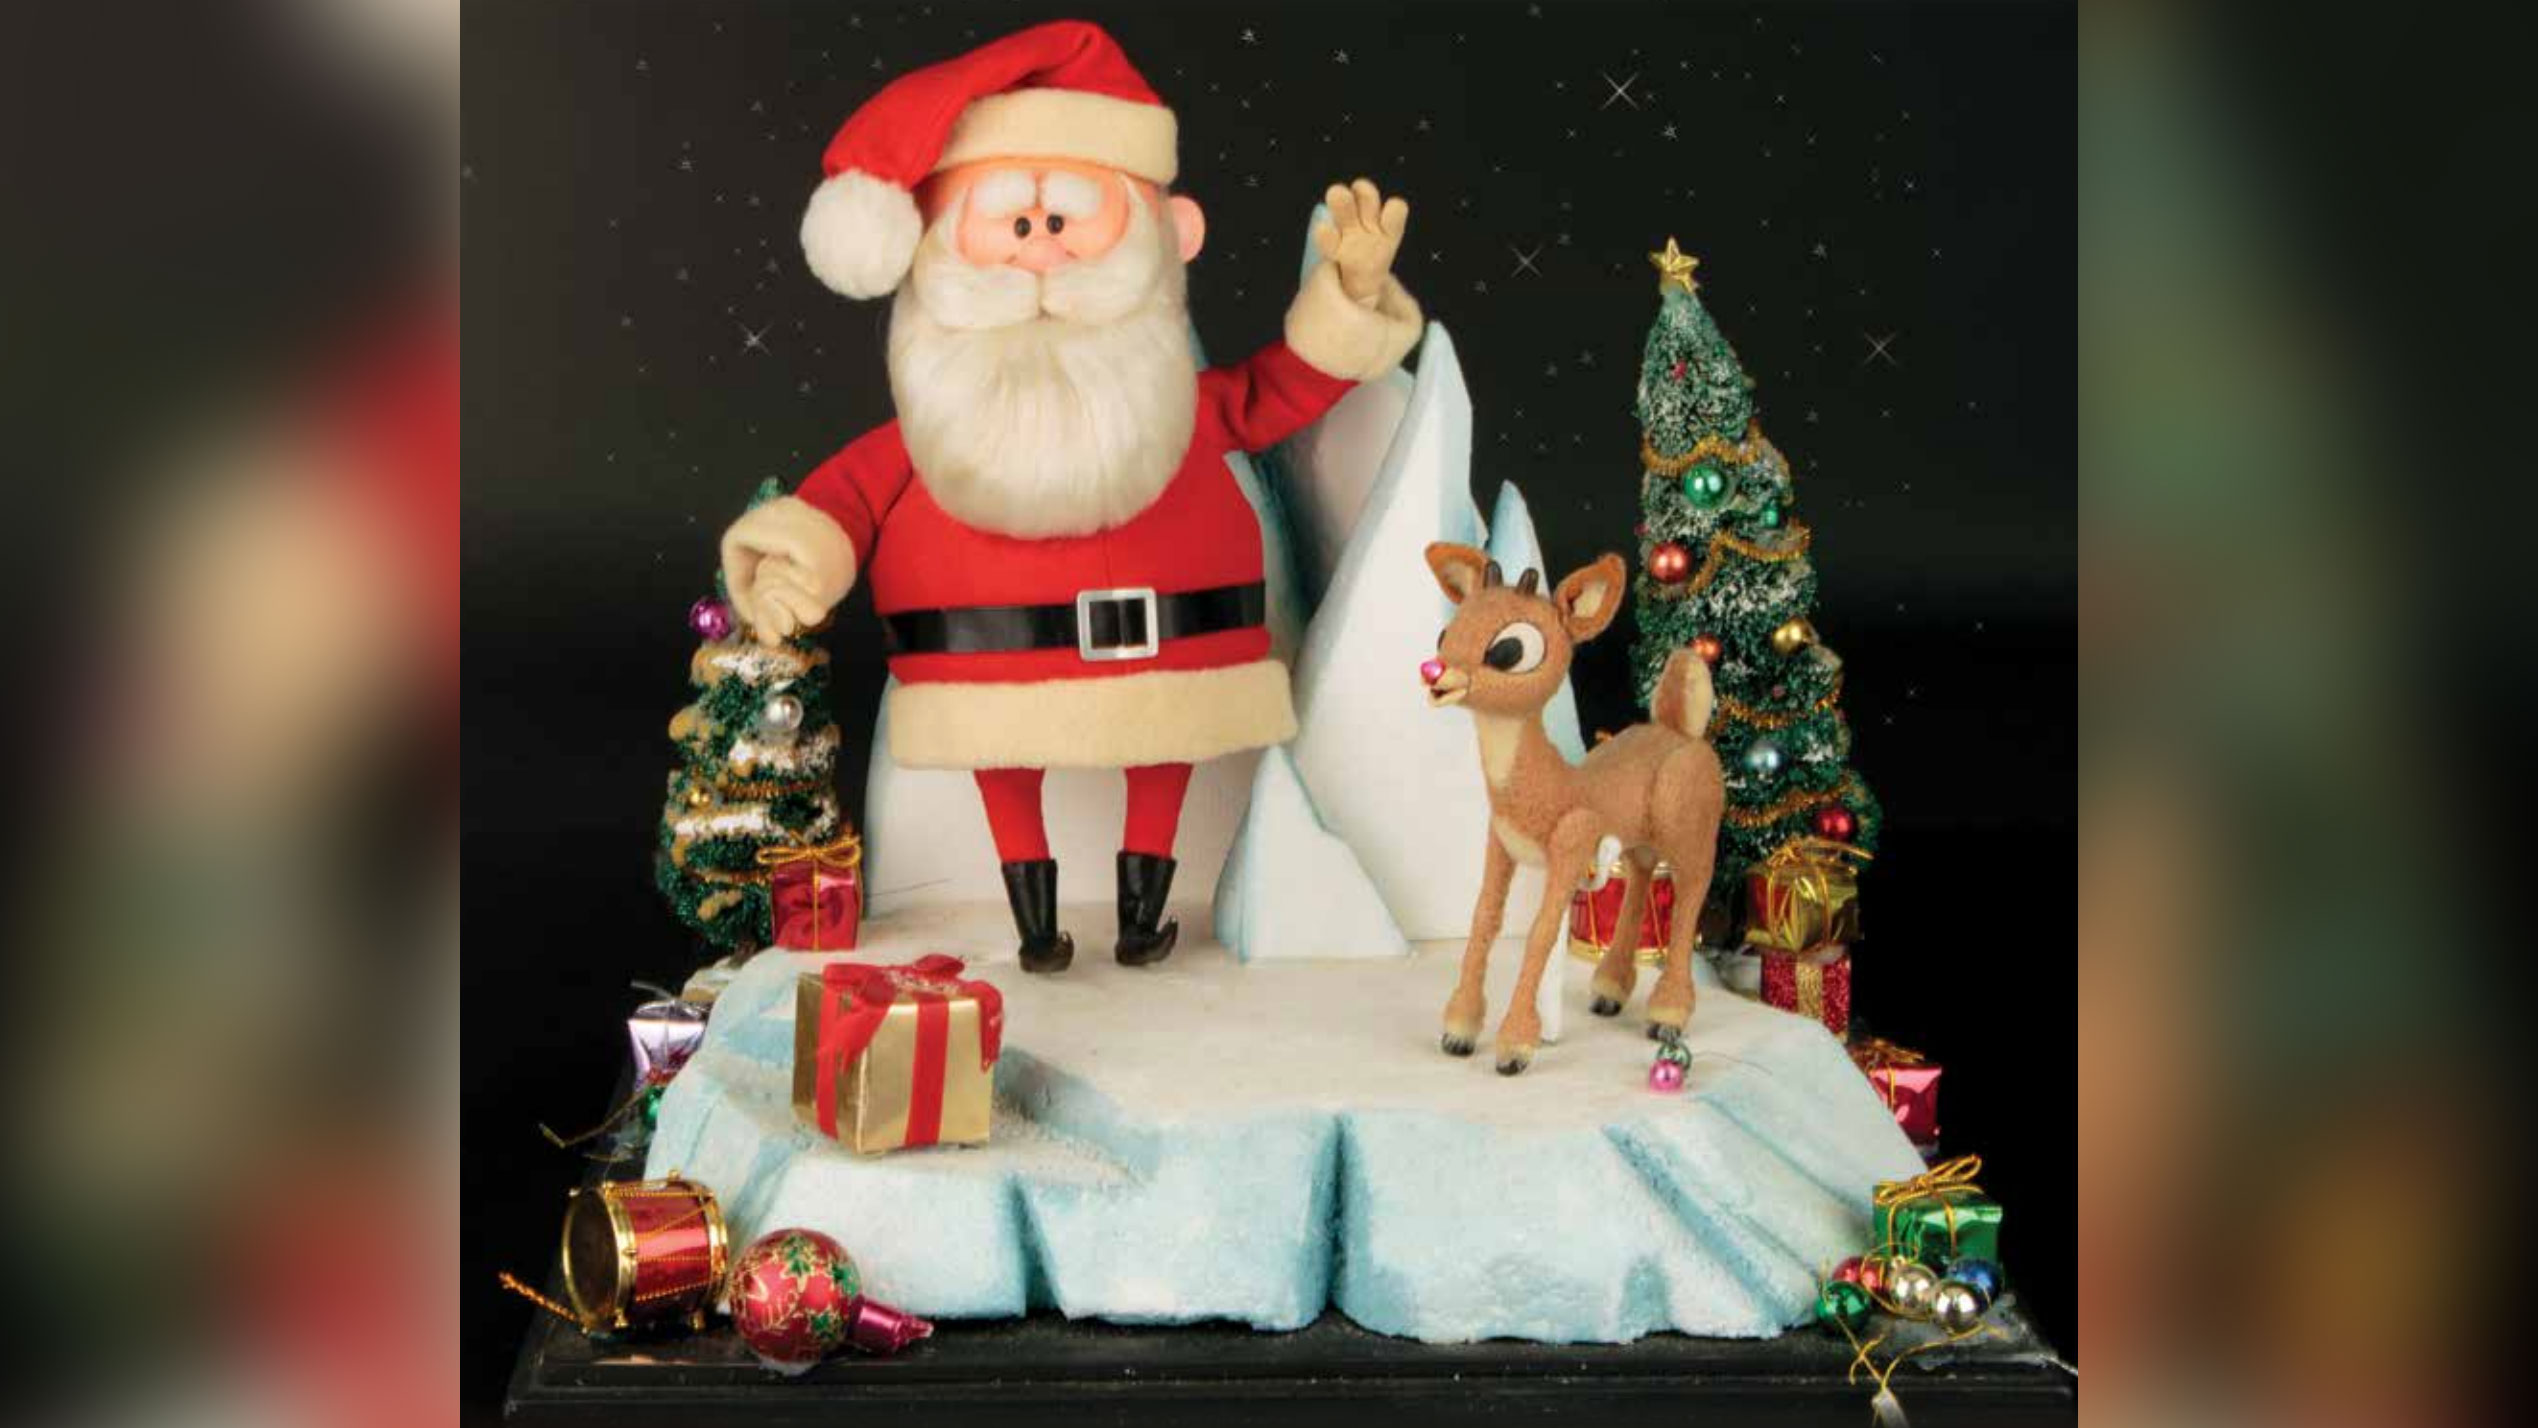 The original puppets from 'Rudolph the Red-Nosed Reindeer' are going up for auction